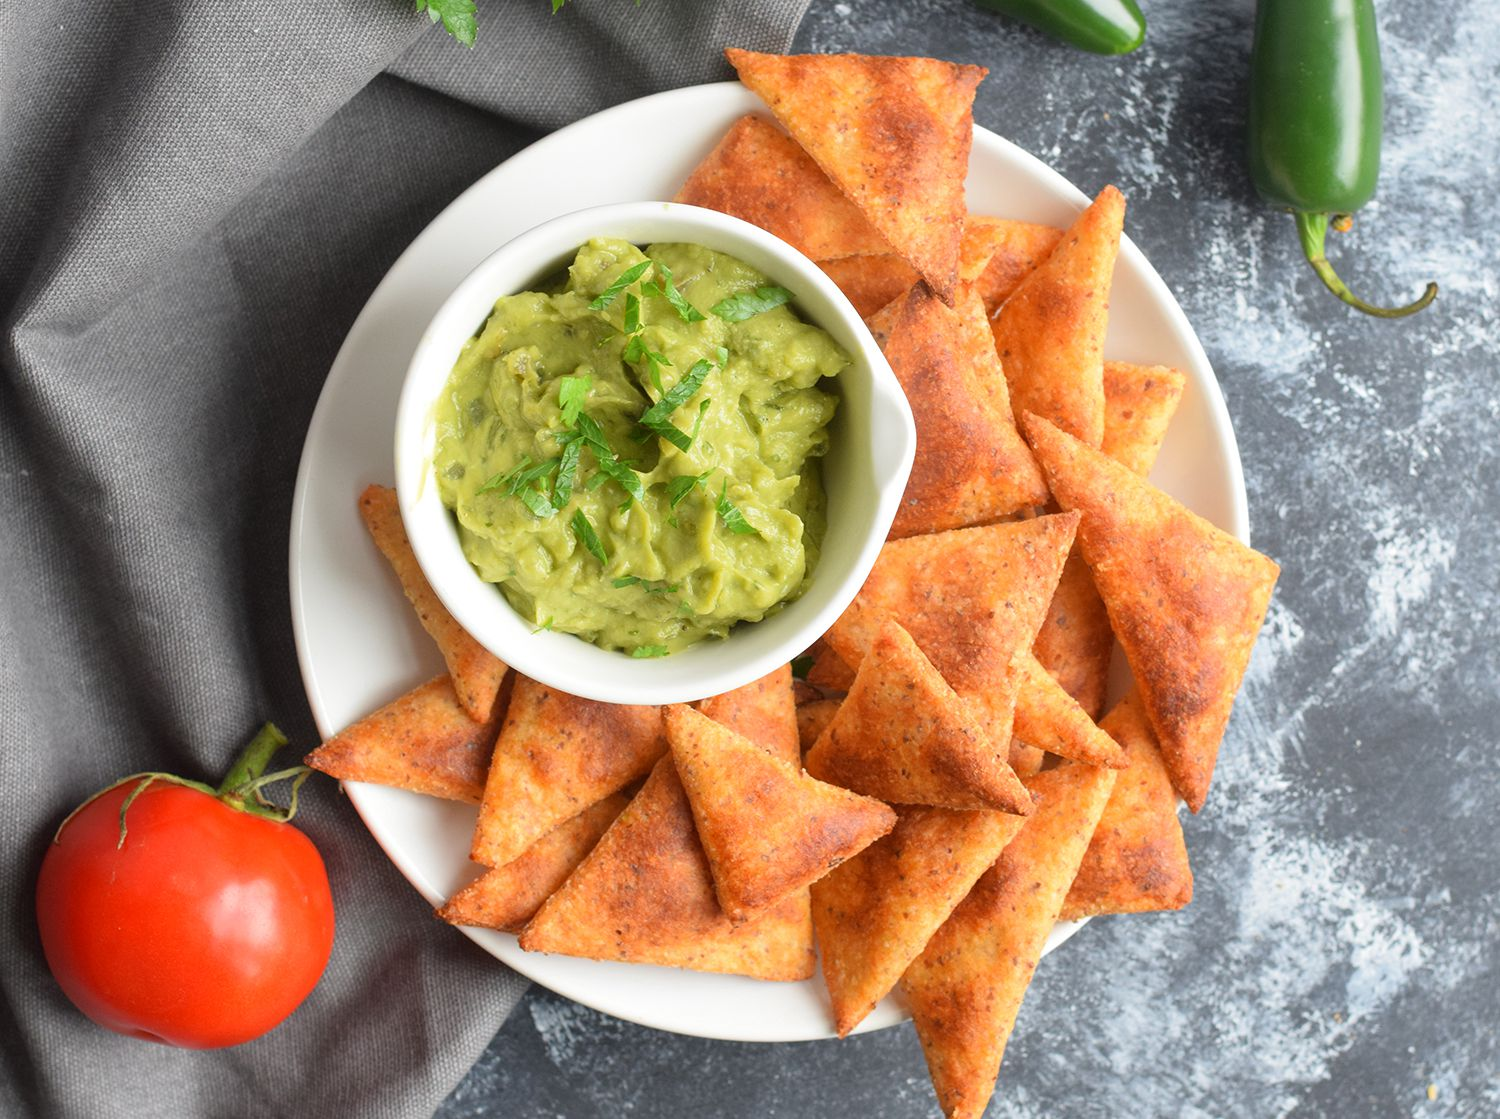 Make Some Guac and Dig Right in With These Keto-friendly Tortilla Chips